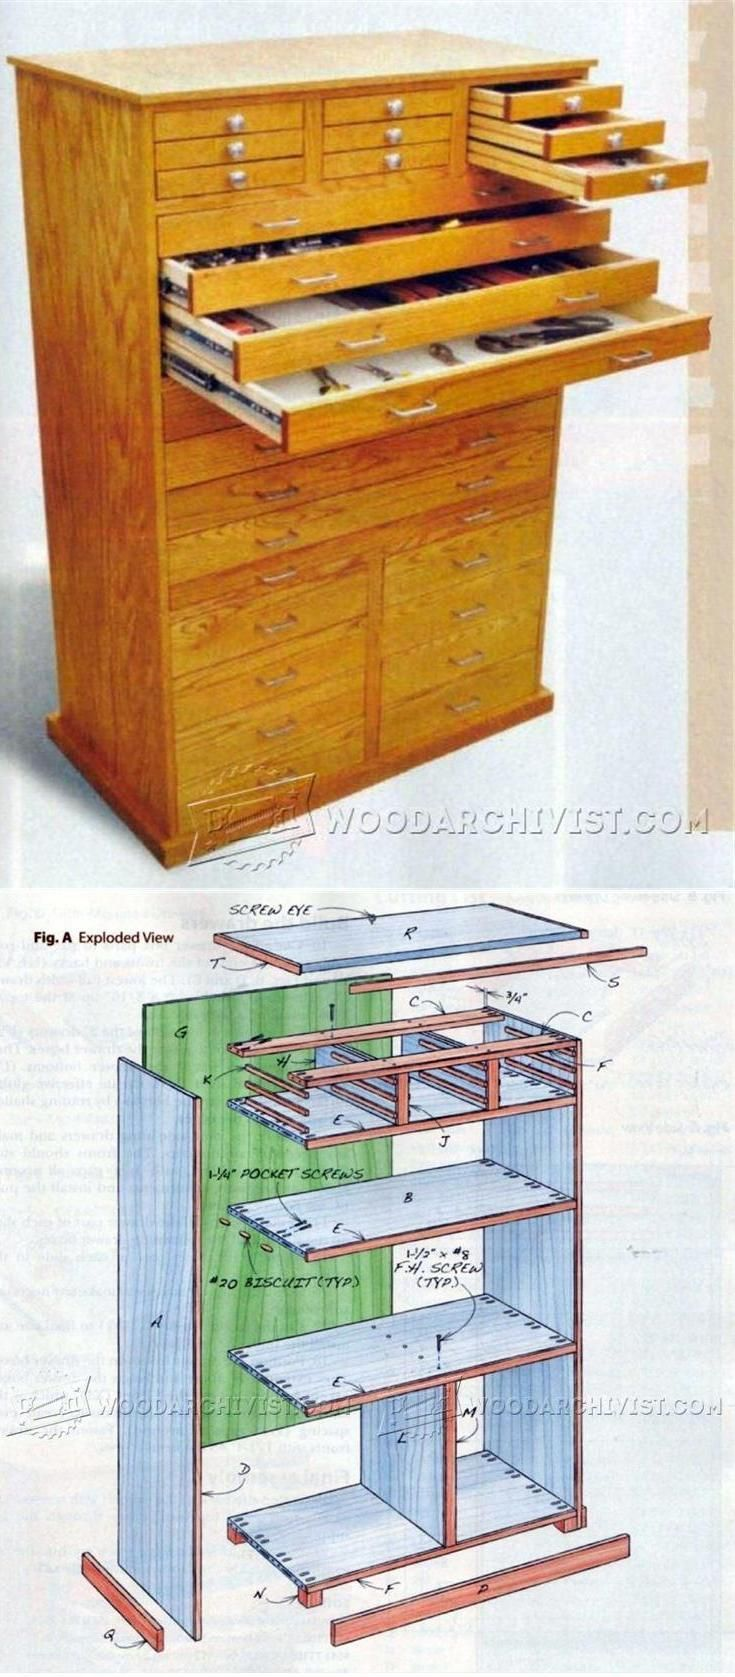 Ginormous Shop Cabinet Plans - Workshop Solutions Plans, Tips and Tricks | WoodArchivist.com